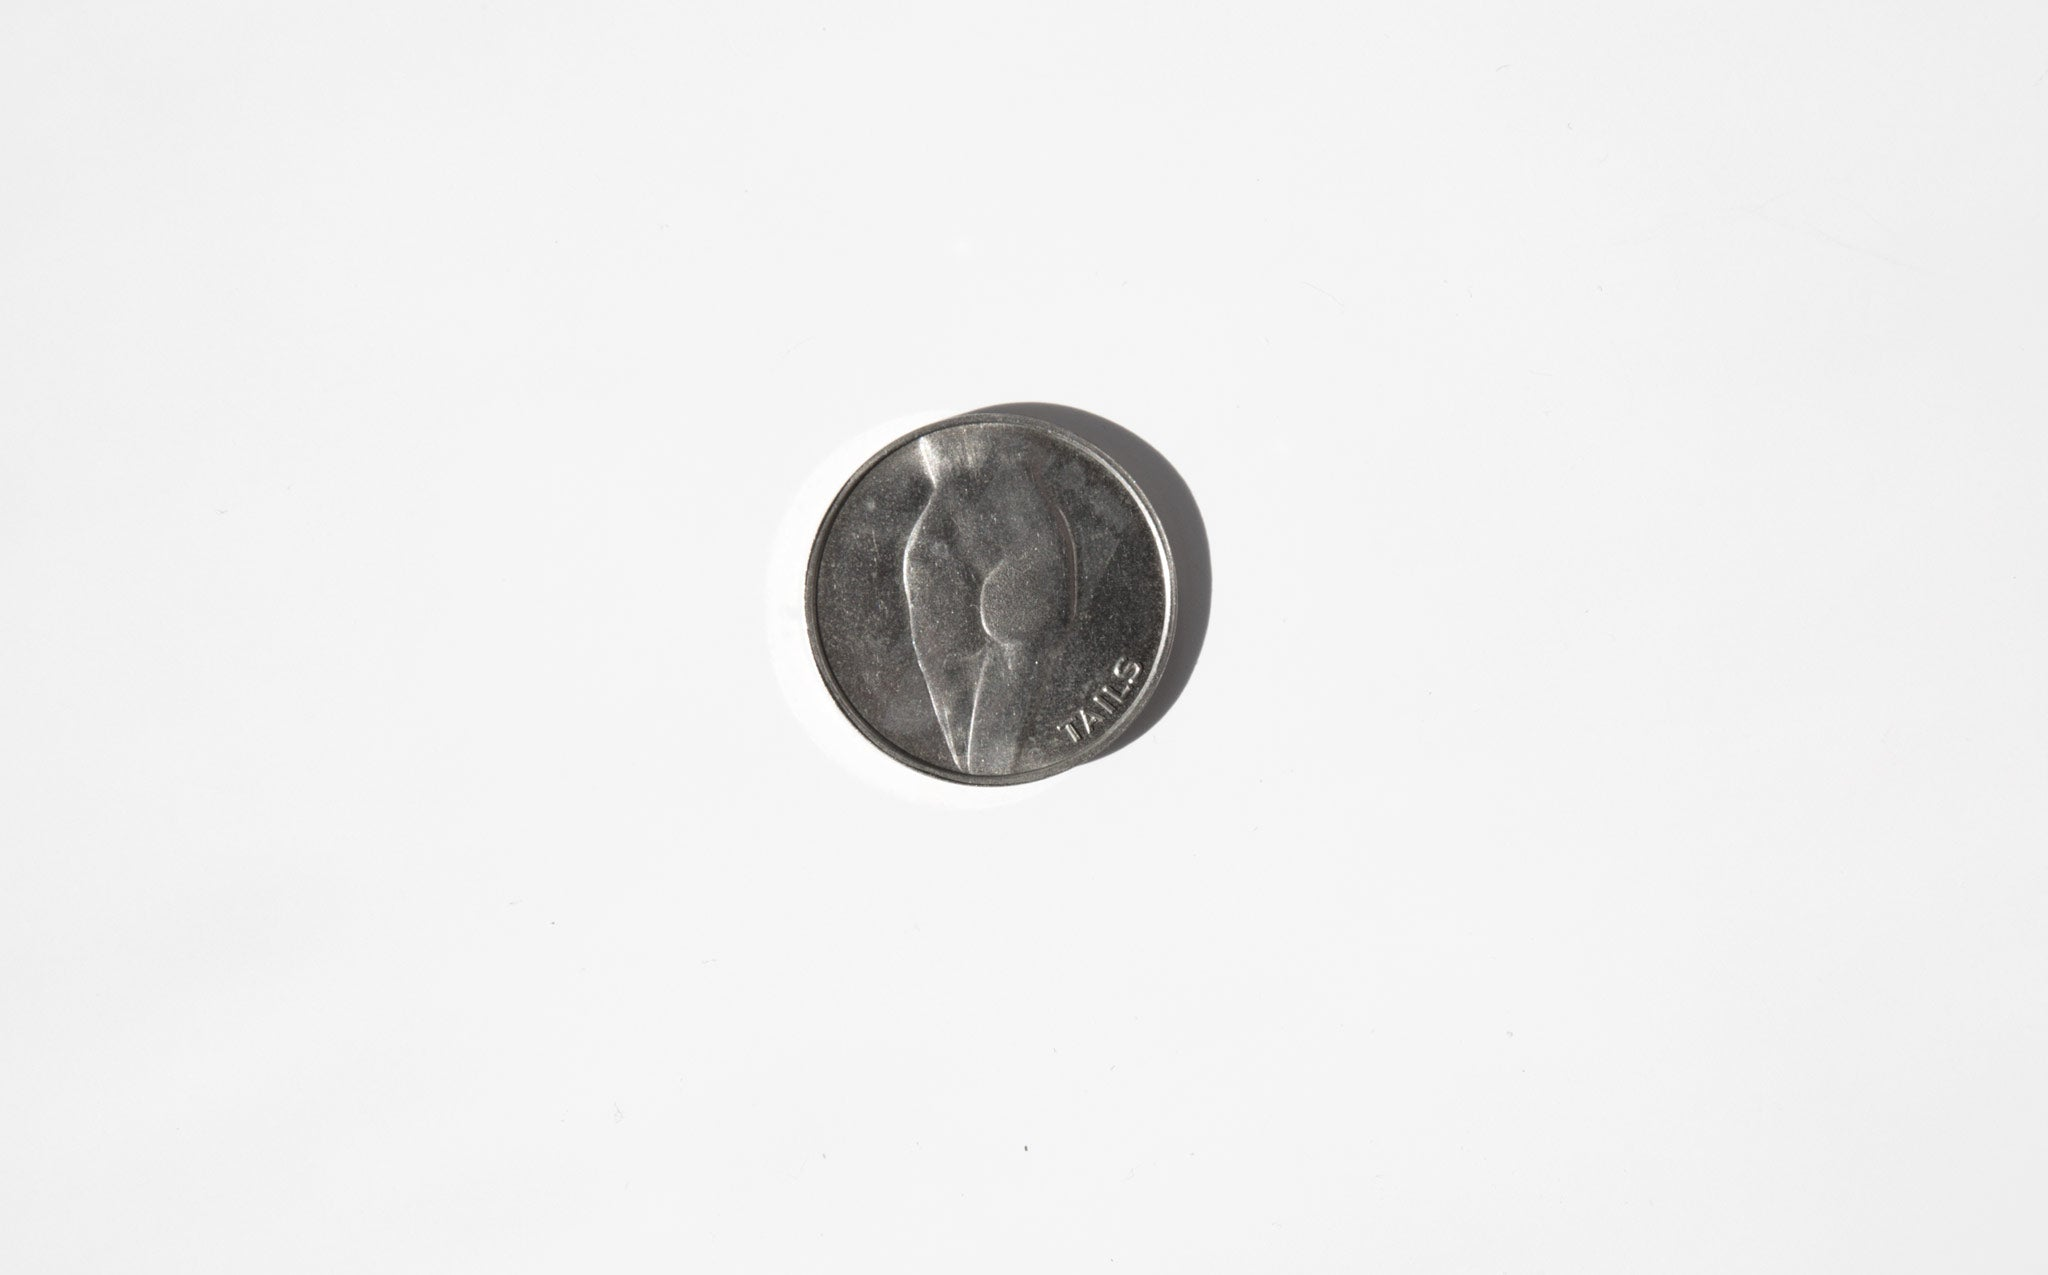 Heads or Tails Coin